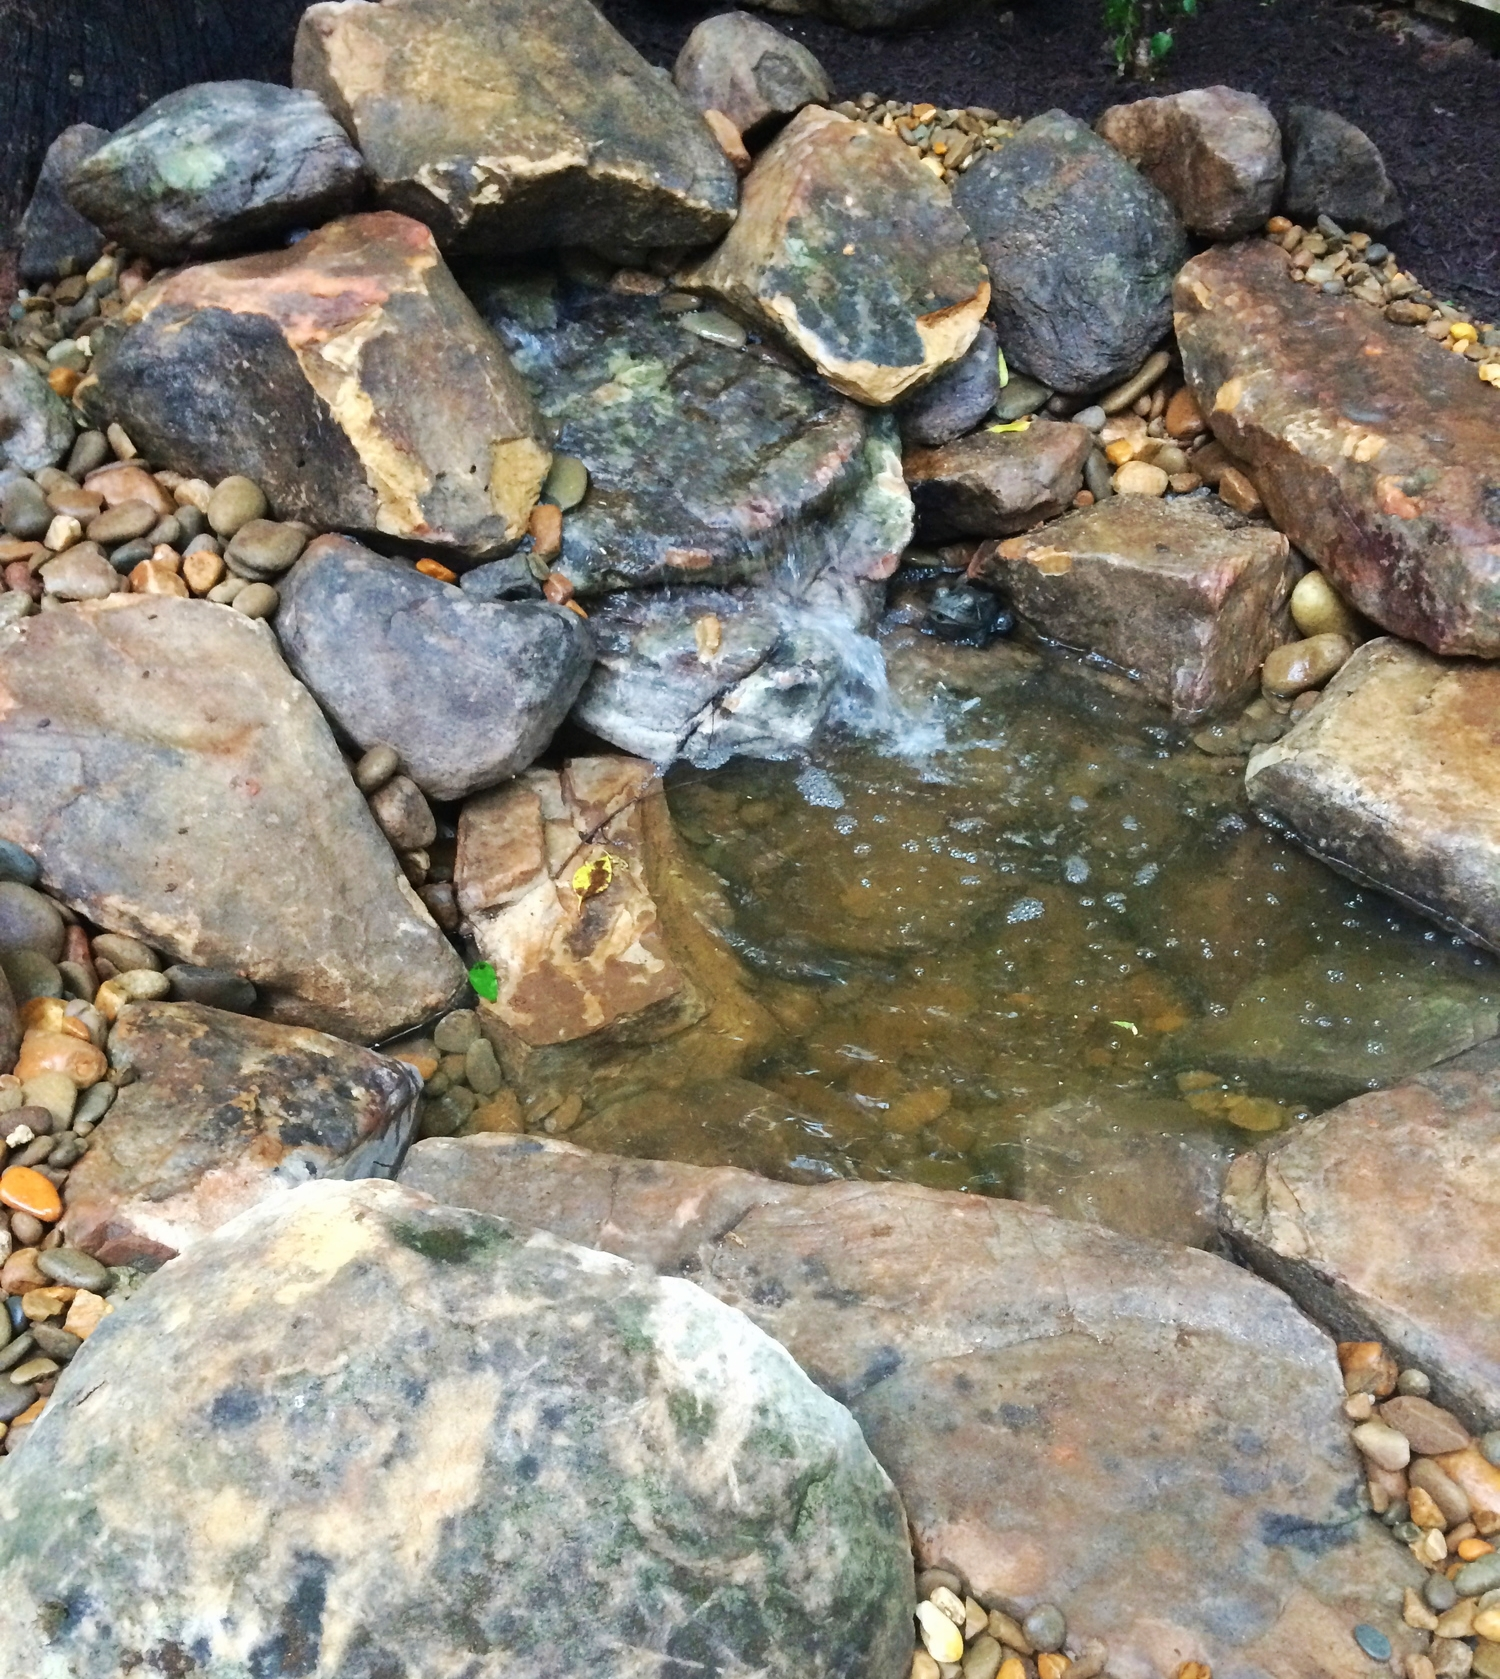 Low boulder and pebble water feature